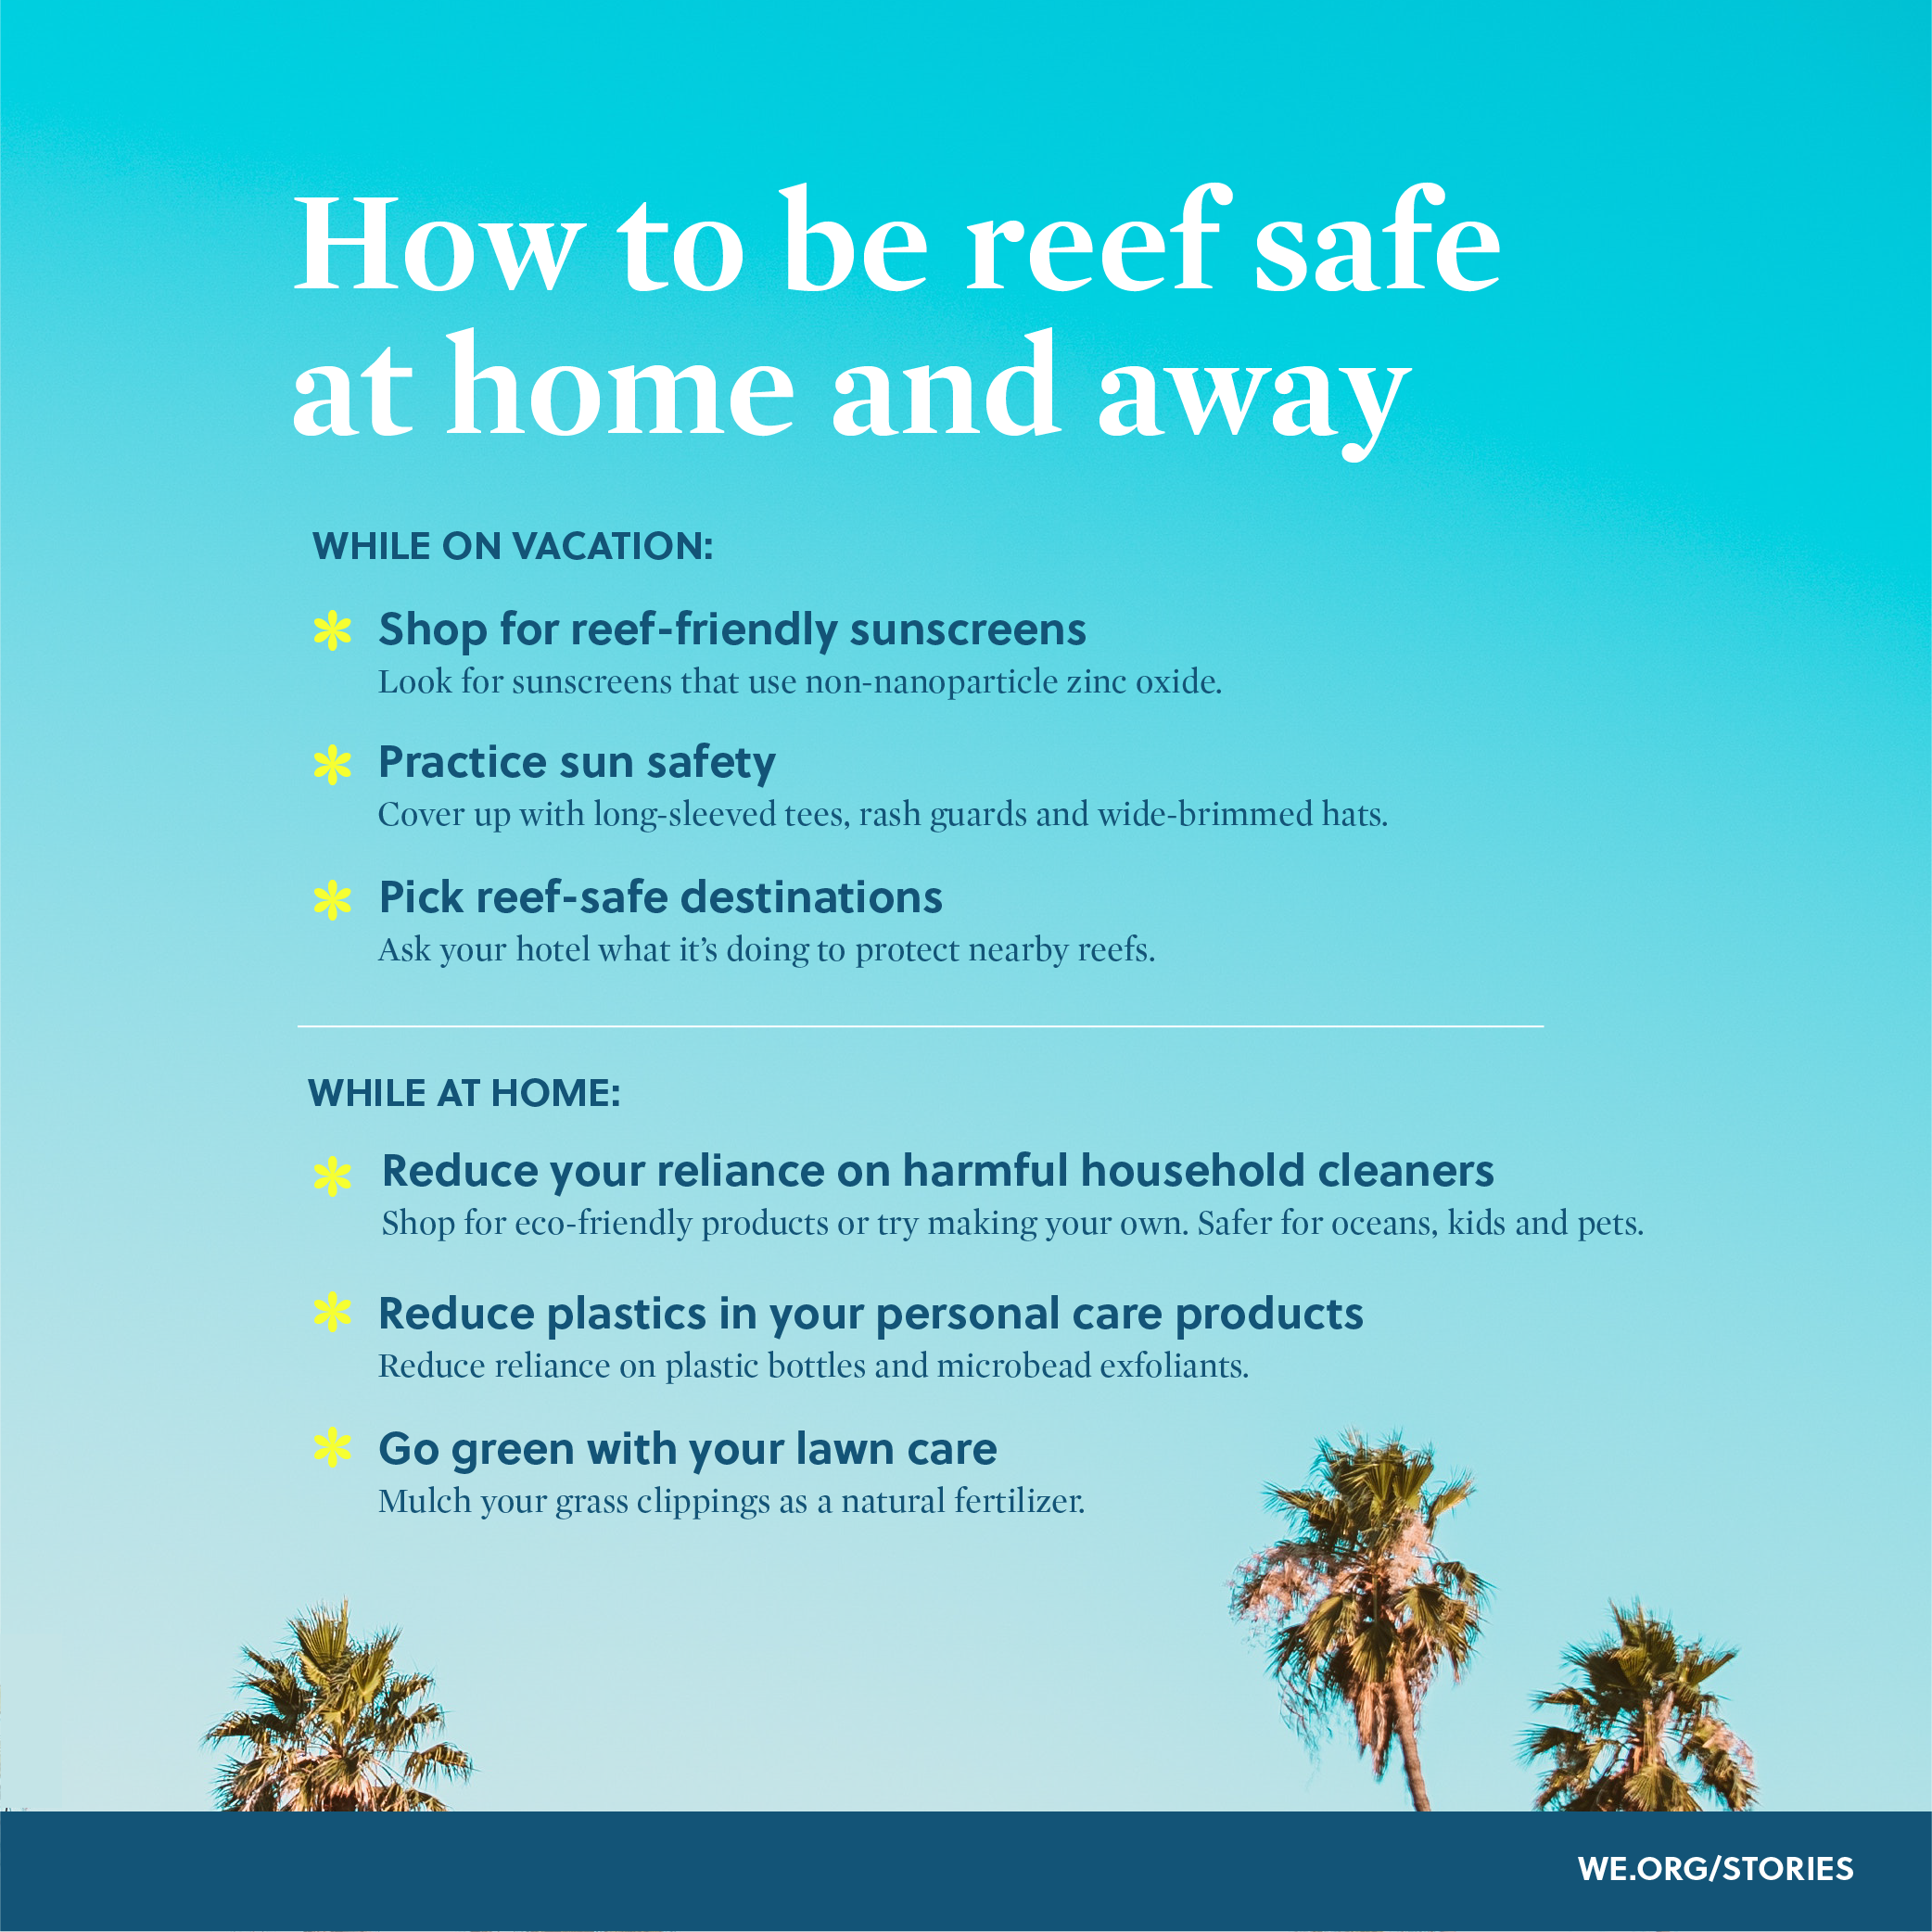 How to be reef safe at home and away.